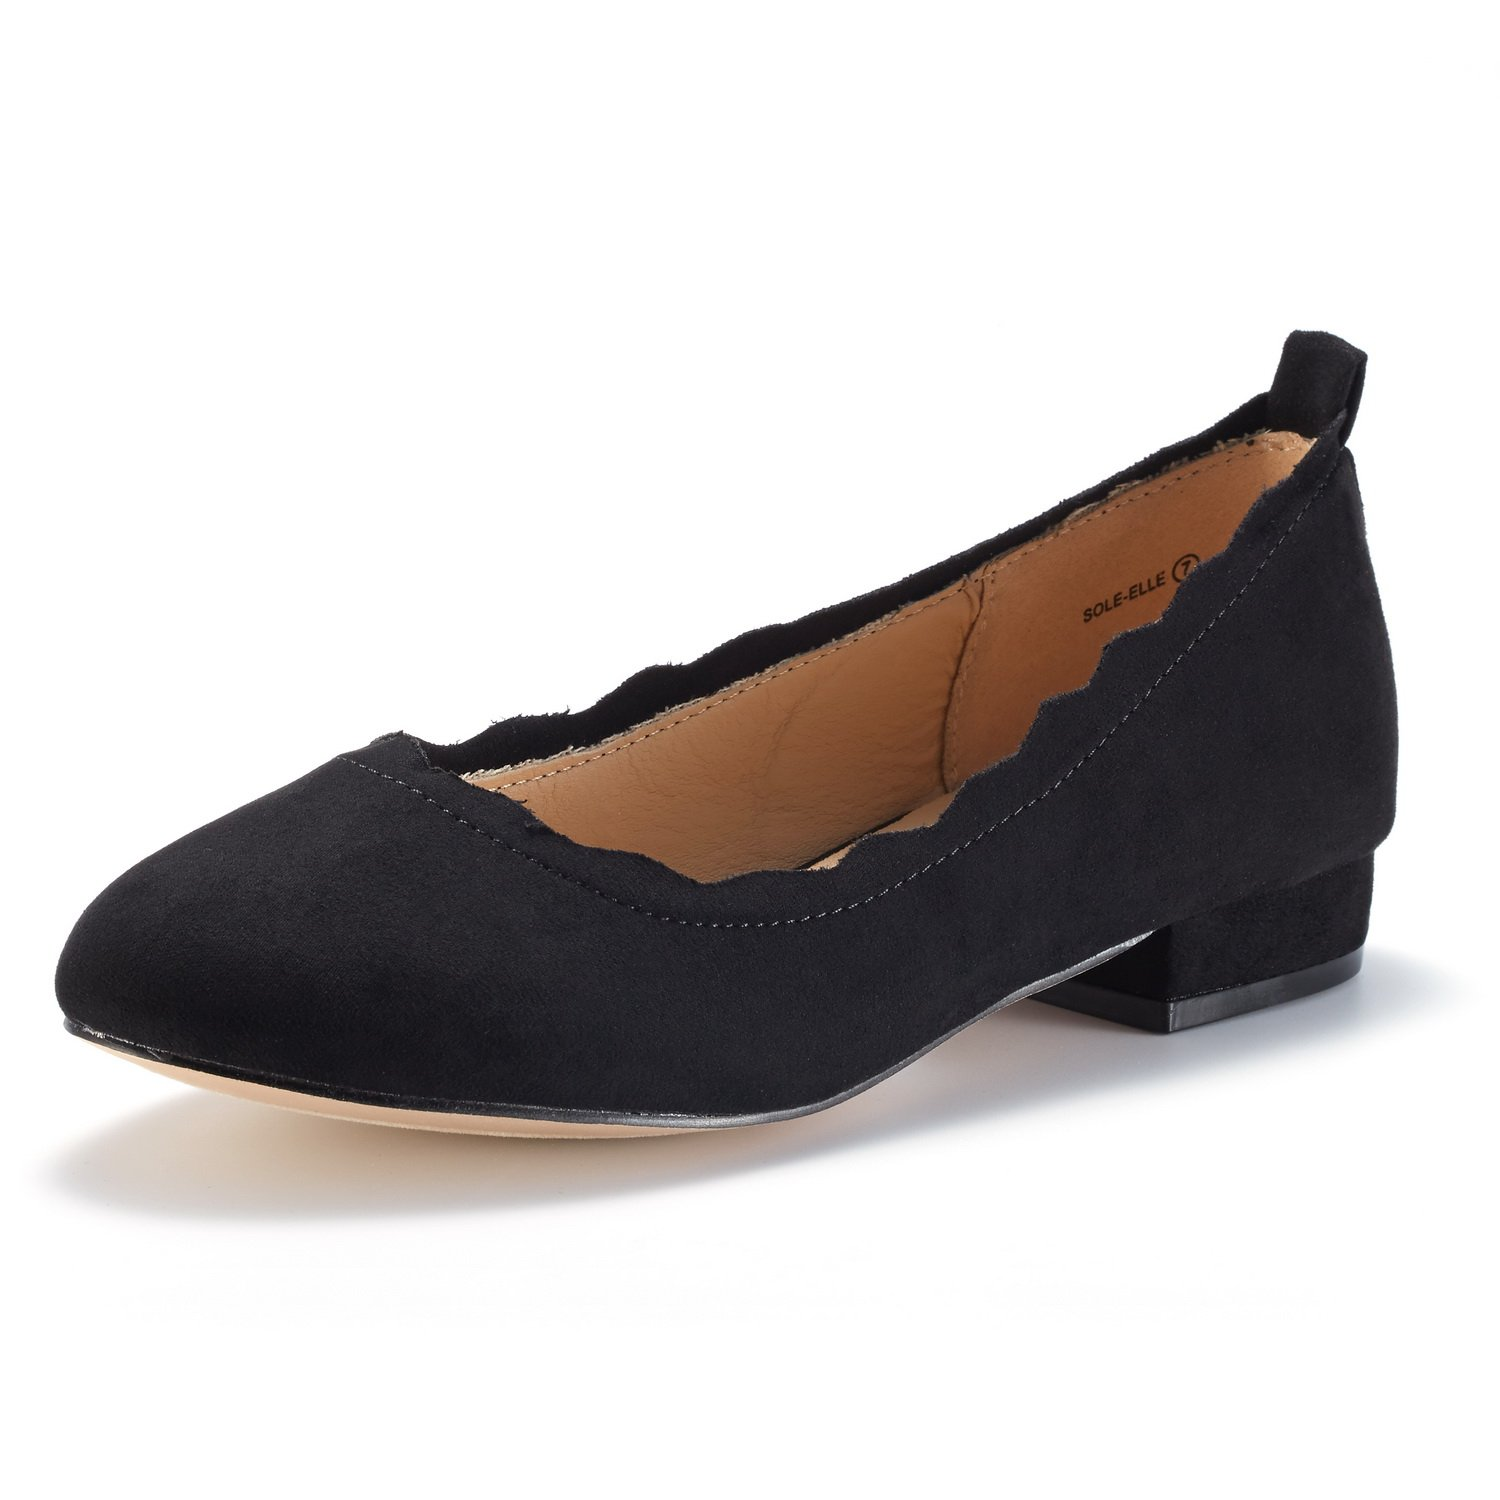 DREAM PAIRS Women's Sole_Elle Black Fashion Low Stacked Slip On Flats Shoes Size 9 M US